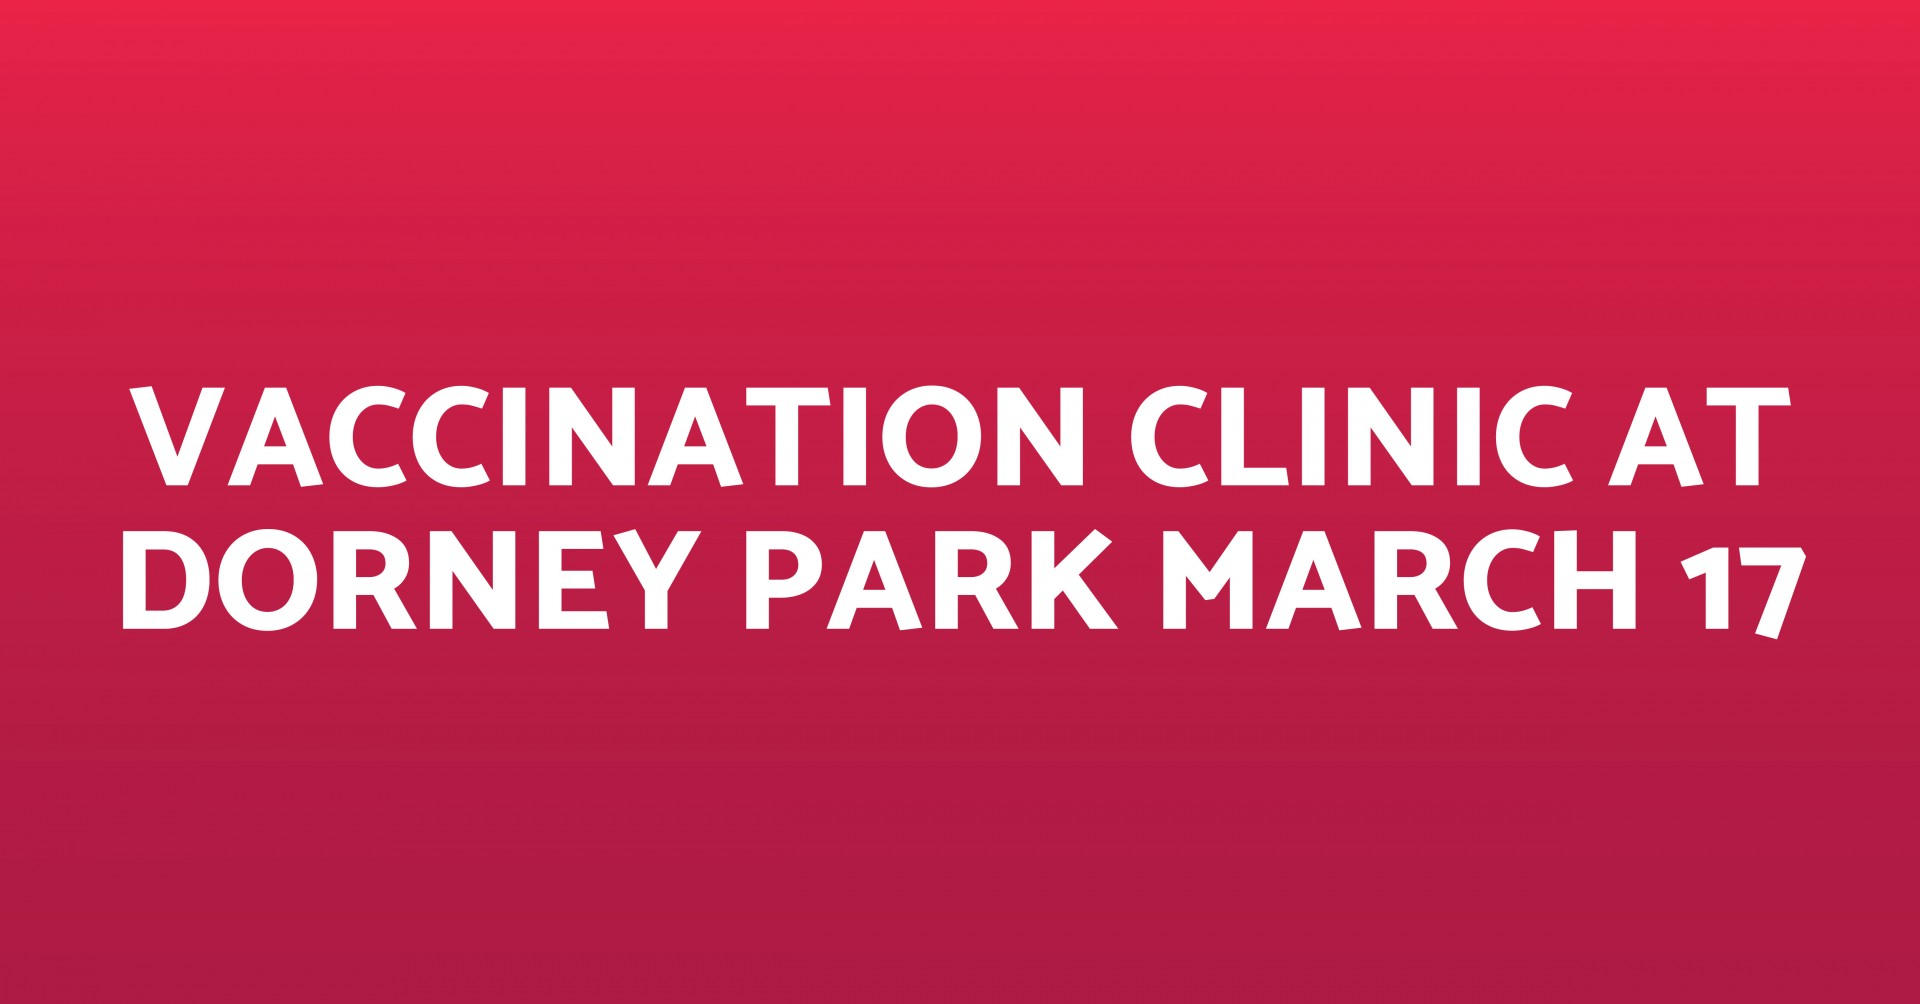 Vaccination Clinic at Dorney Park March 17_1200x628